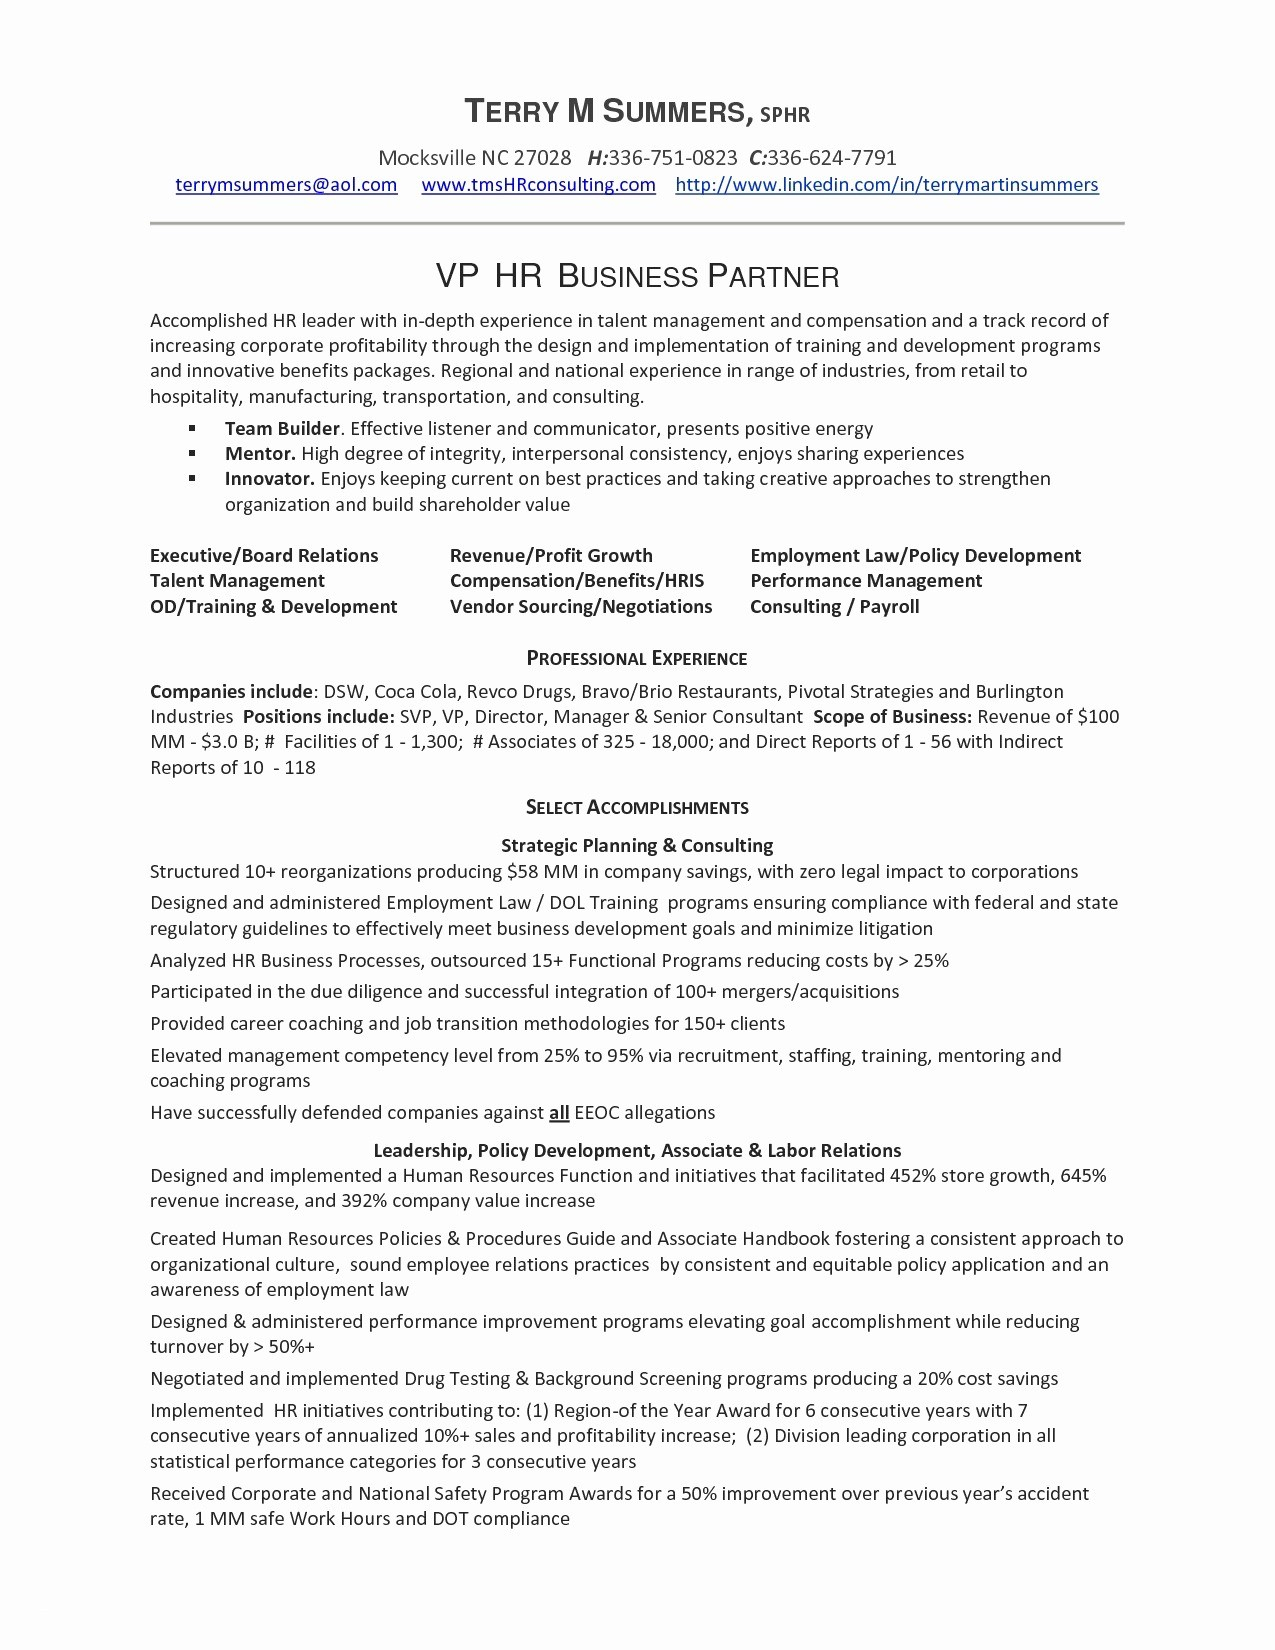 Health Care Business Analyst Resume - Healthcare Business Retail and Education are Examples Of Industries